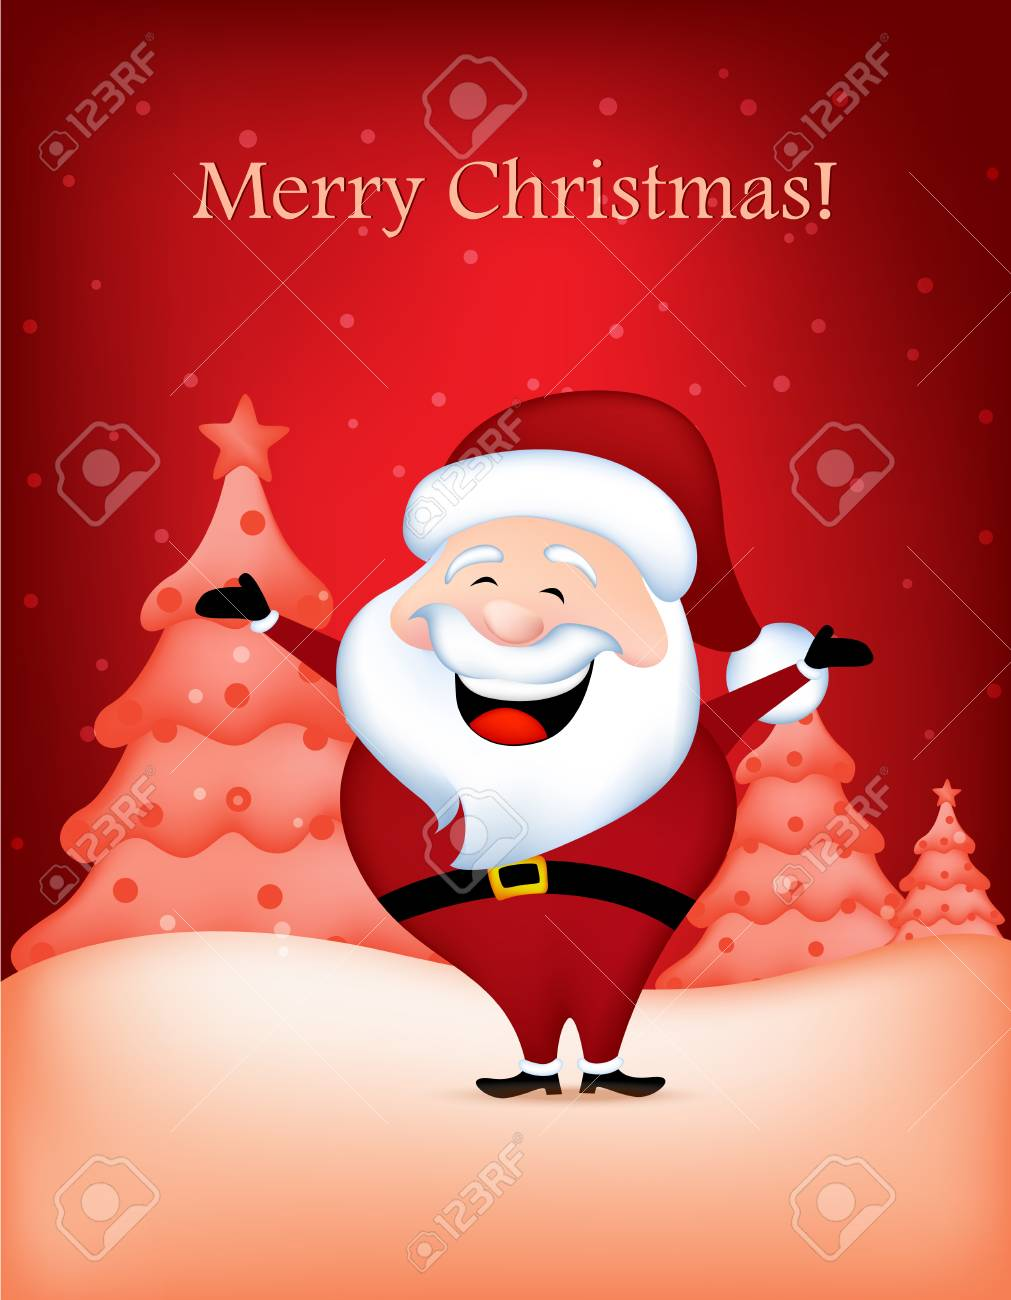 Cute Santa Claus Wishing A Merry Christmas Greeting Card Royalty ...